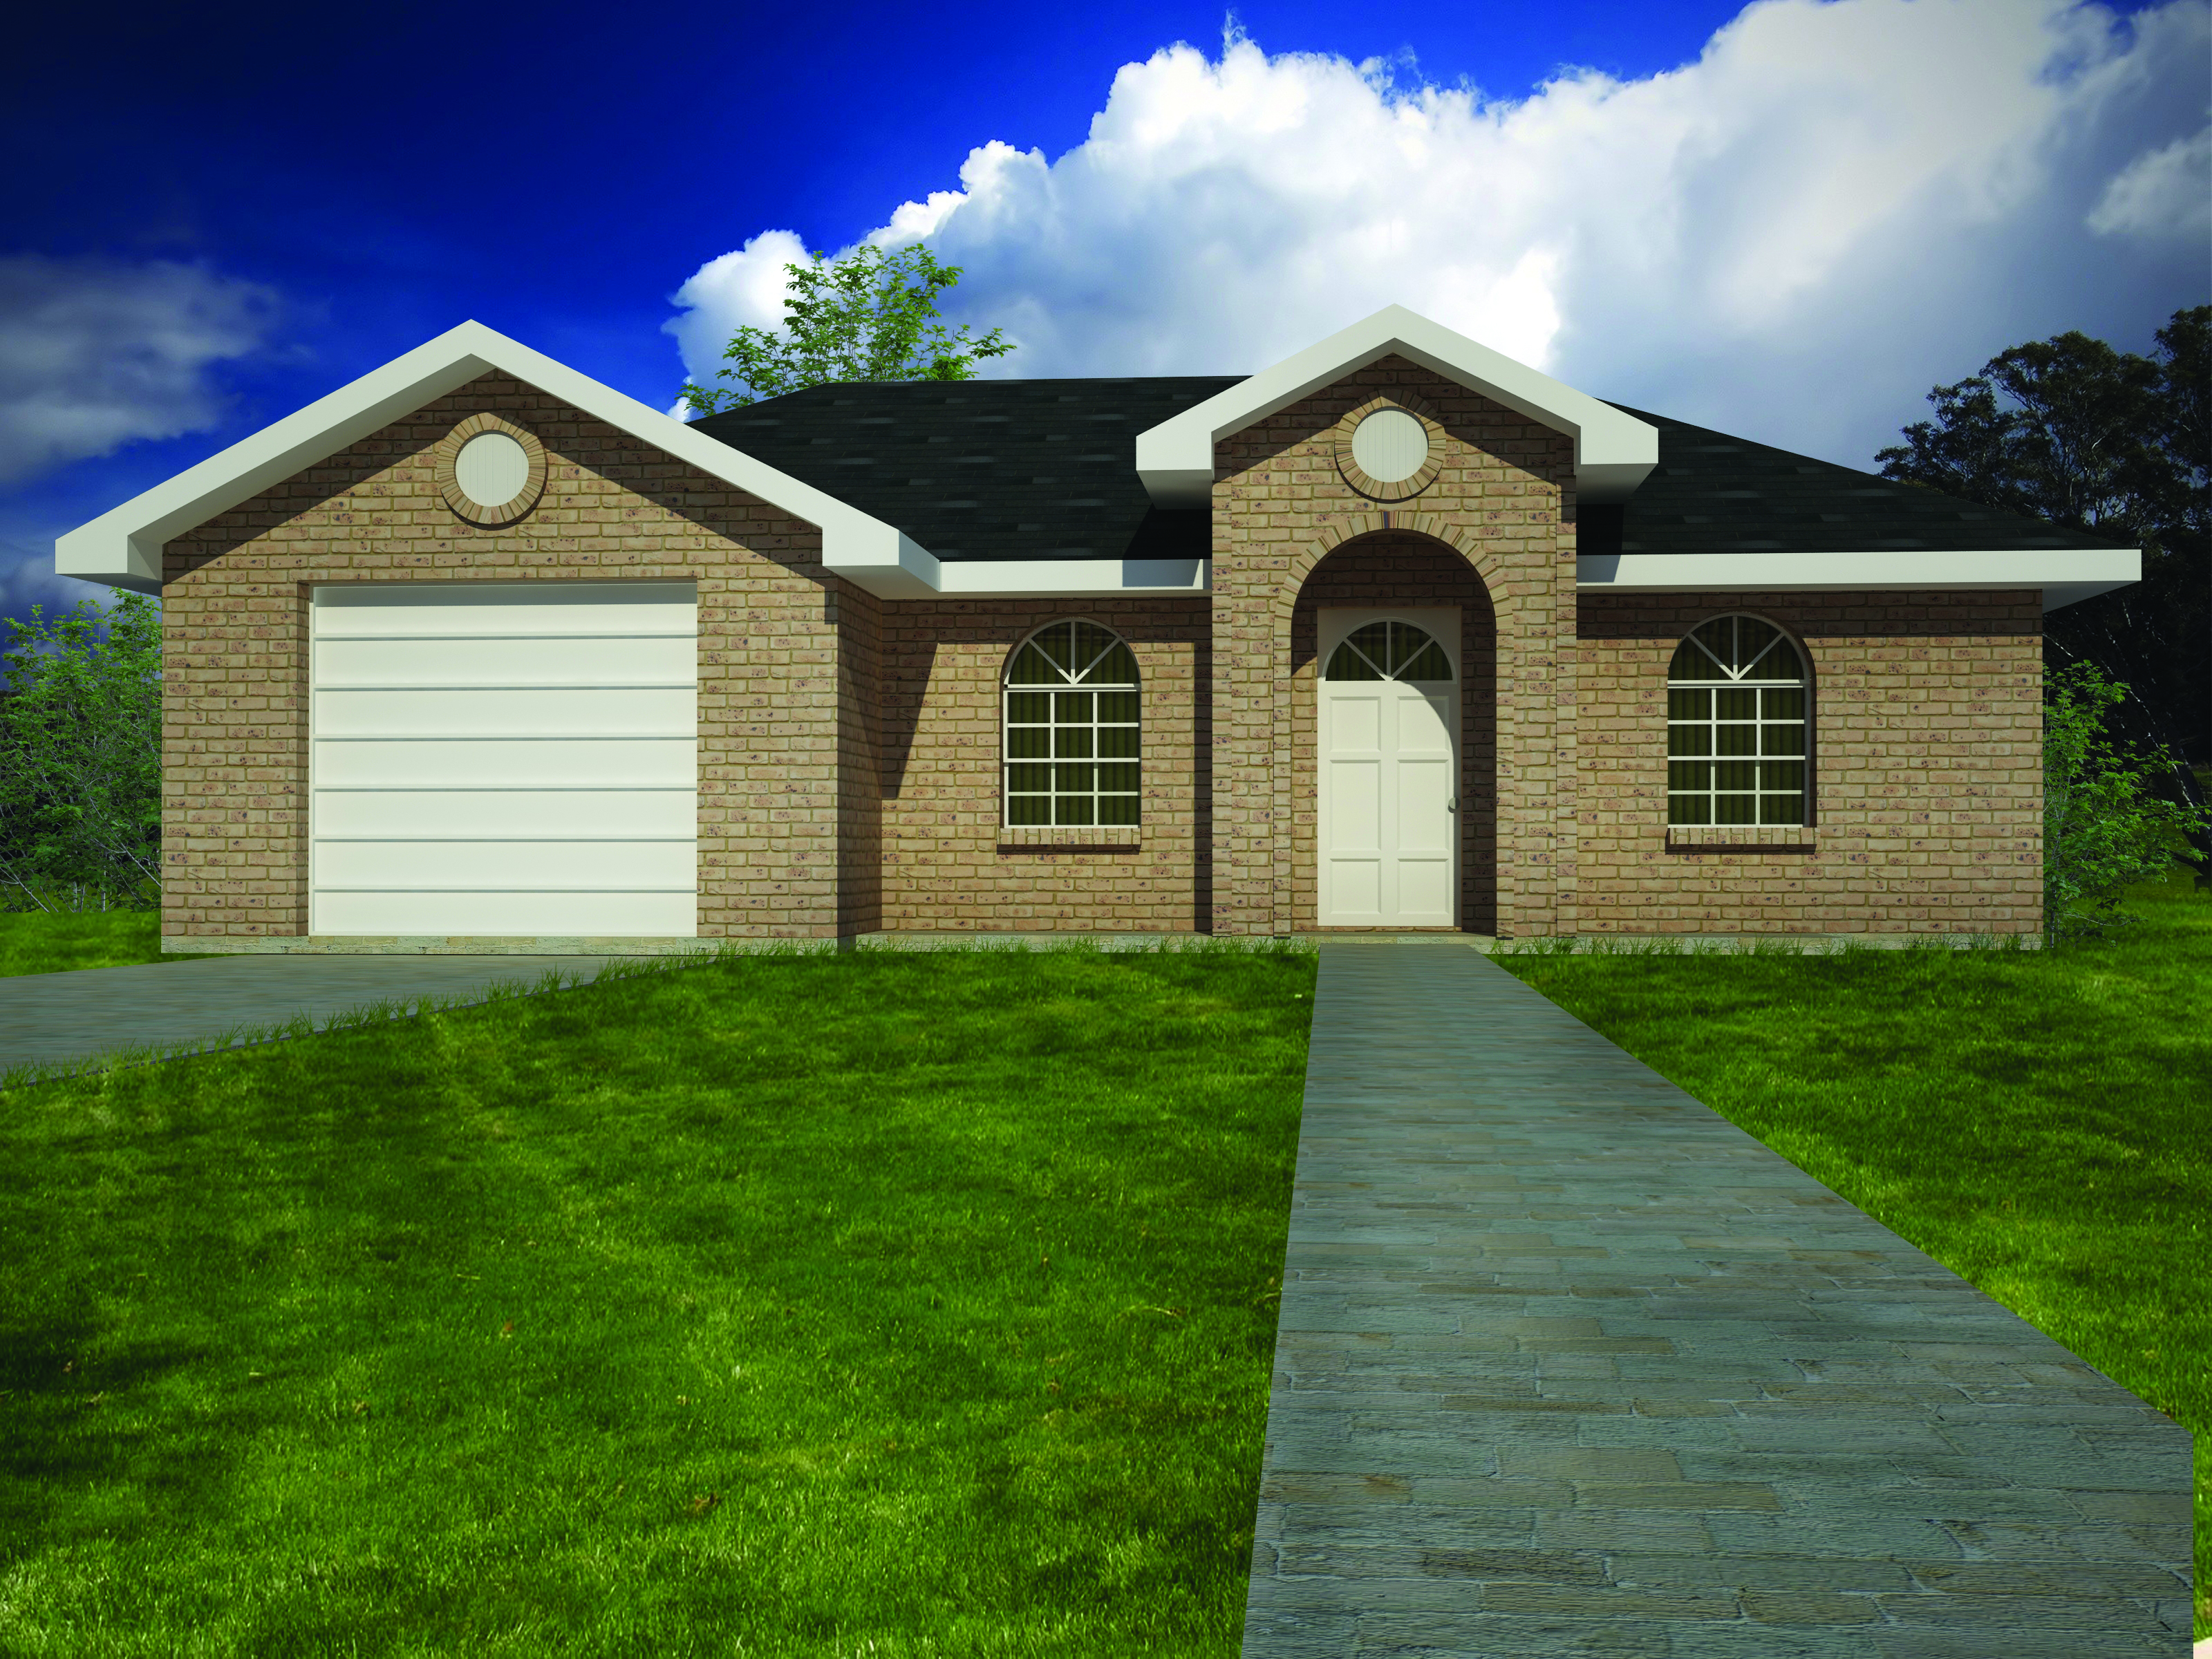 Compact brick ranch home 61028ks architectural designs for Brick ranch home plans